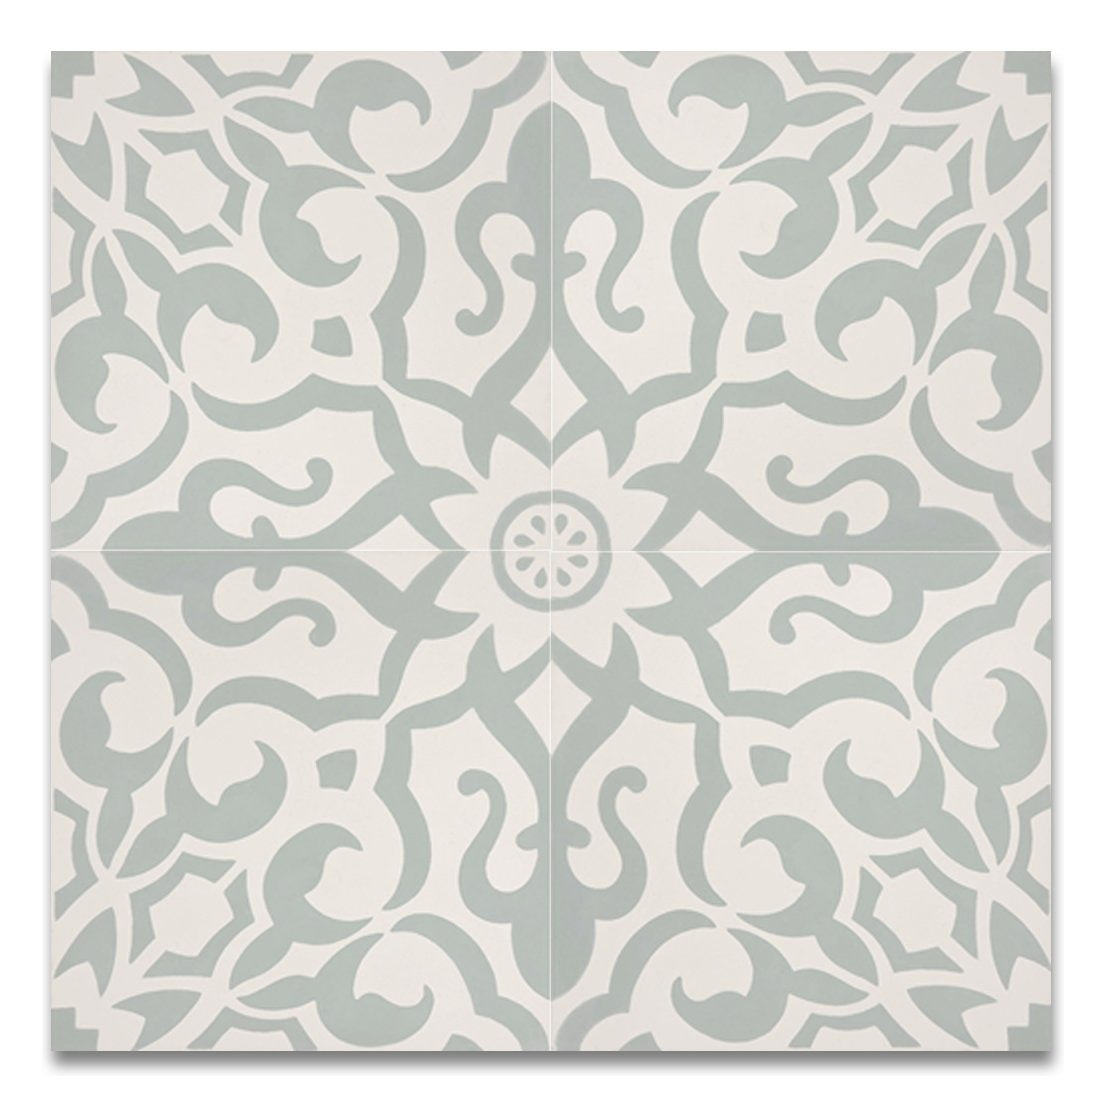 Moroccan Mosaic & Tile House CTP57-01 Atlas Handmade Cement Tile 8''x 8'' Light Green,White